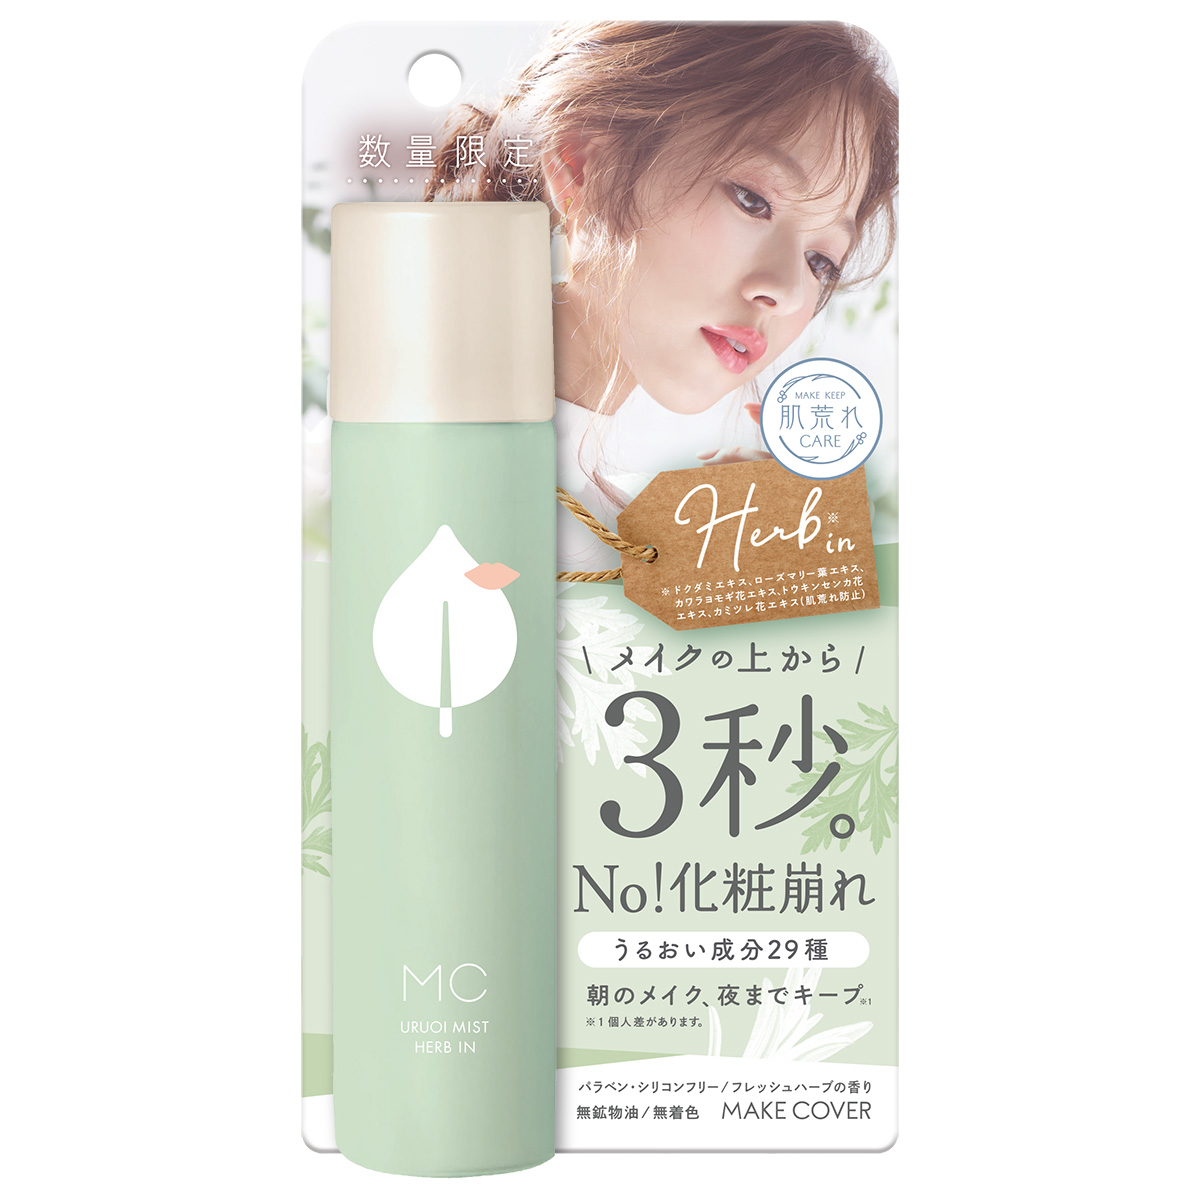 MAKE COVER URUOI MIST HERB IN